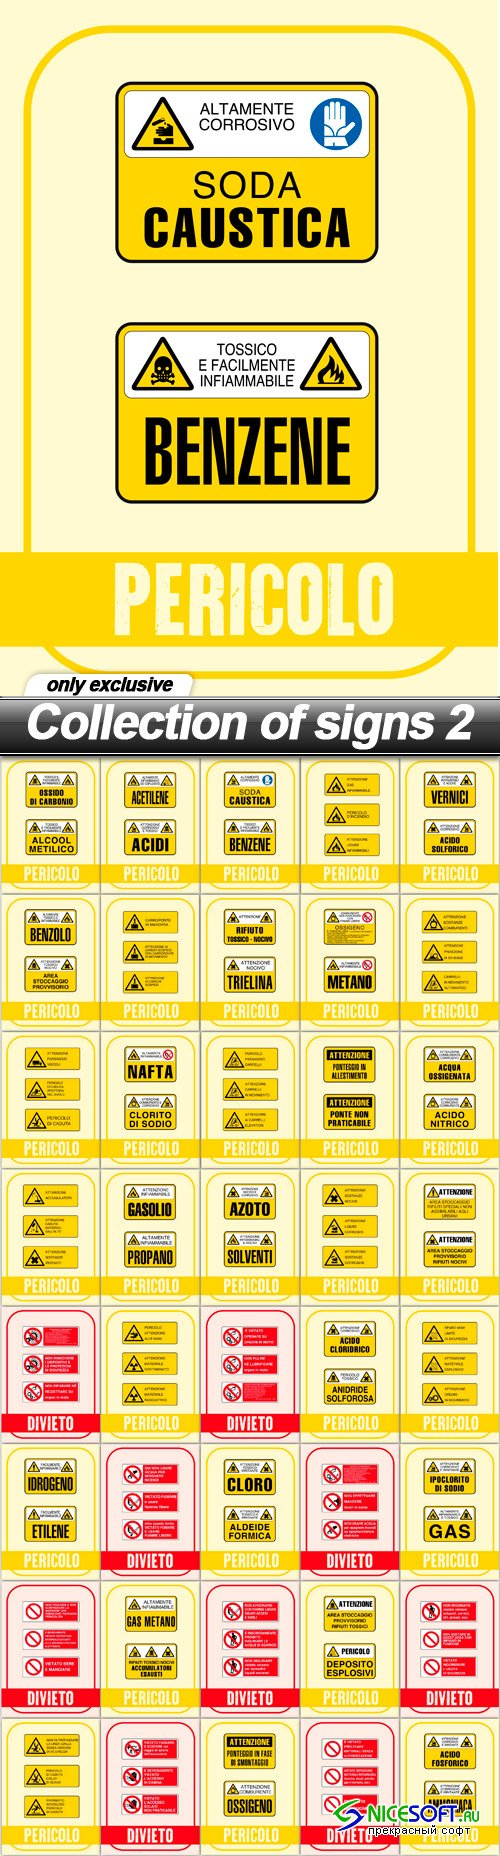 Collection of signs 2